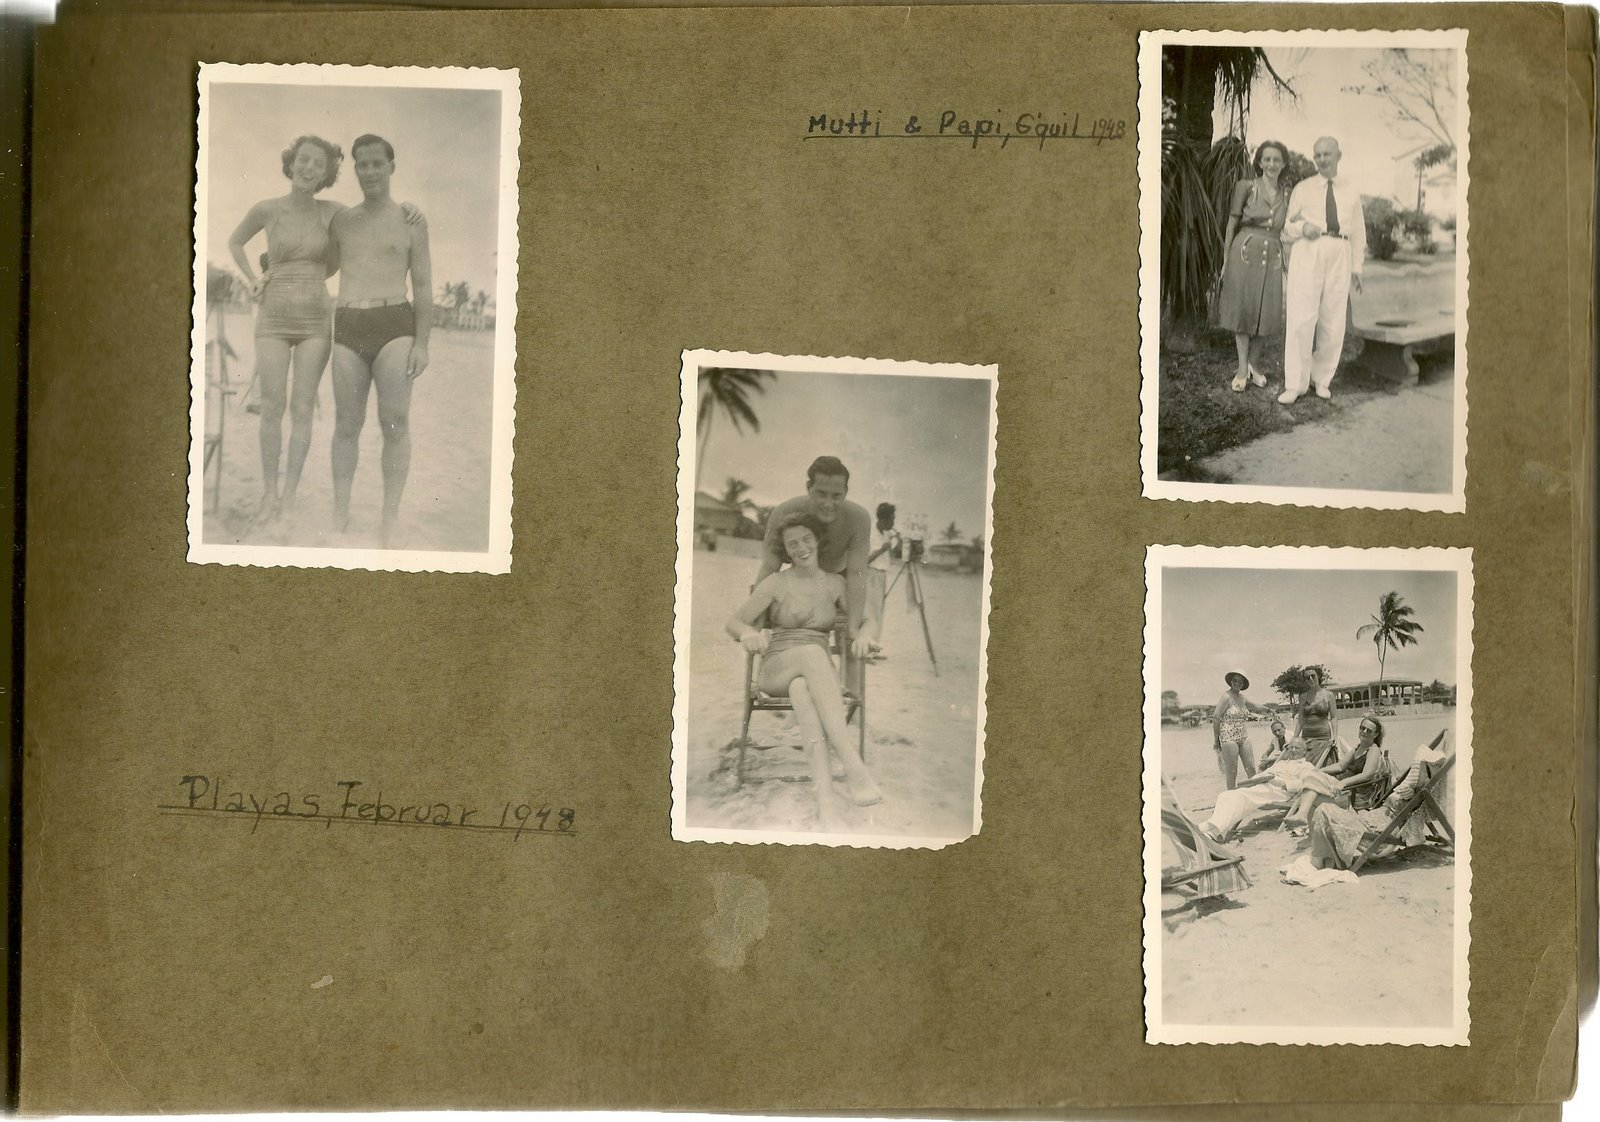 Ilse Grunewald (nee Koppel) Collection_ Playas -- February 1948, with her husband, Heinz Grunewald a